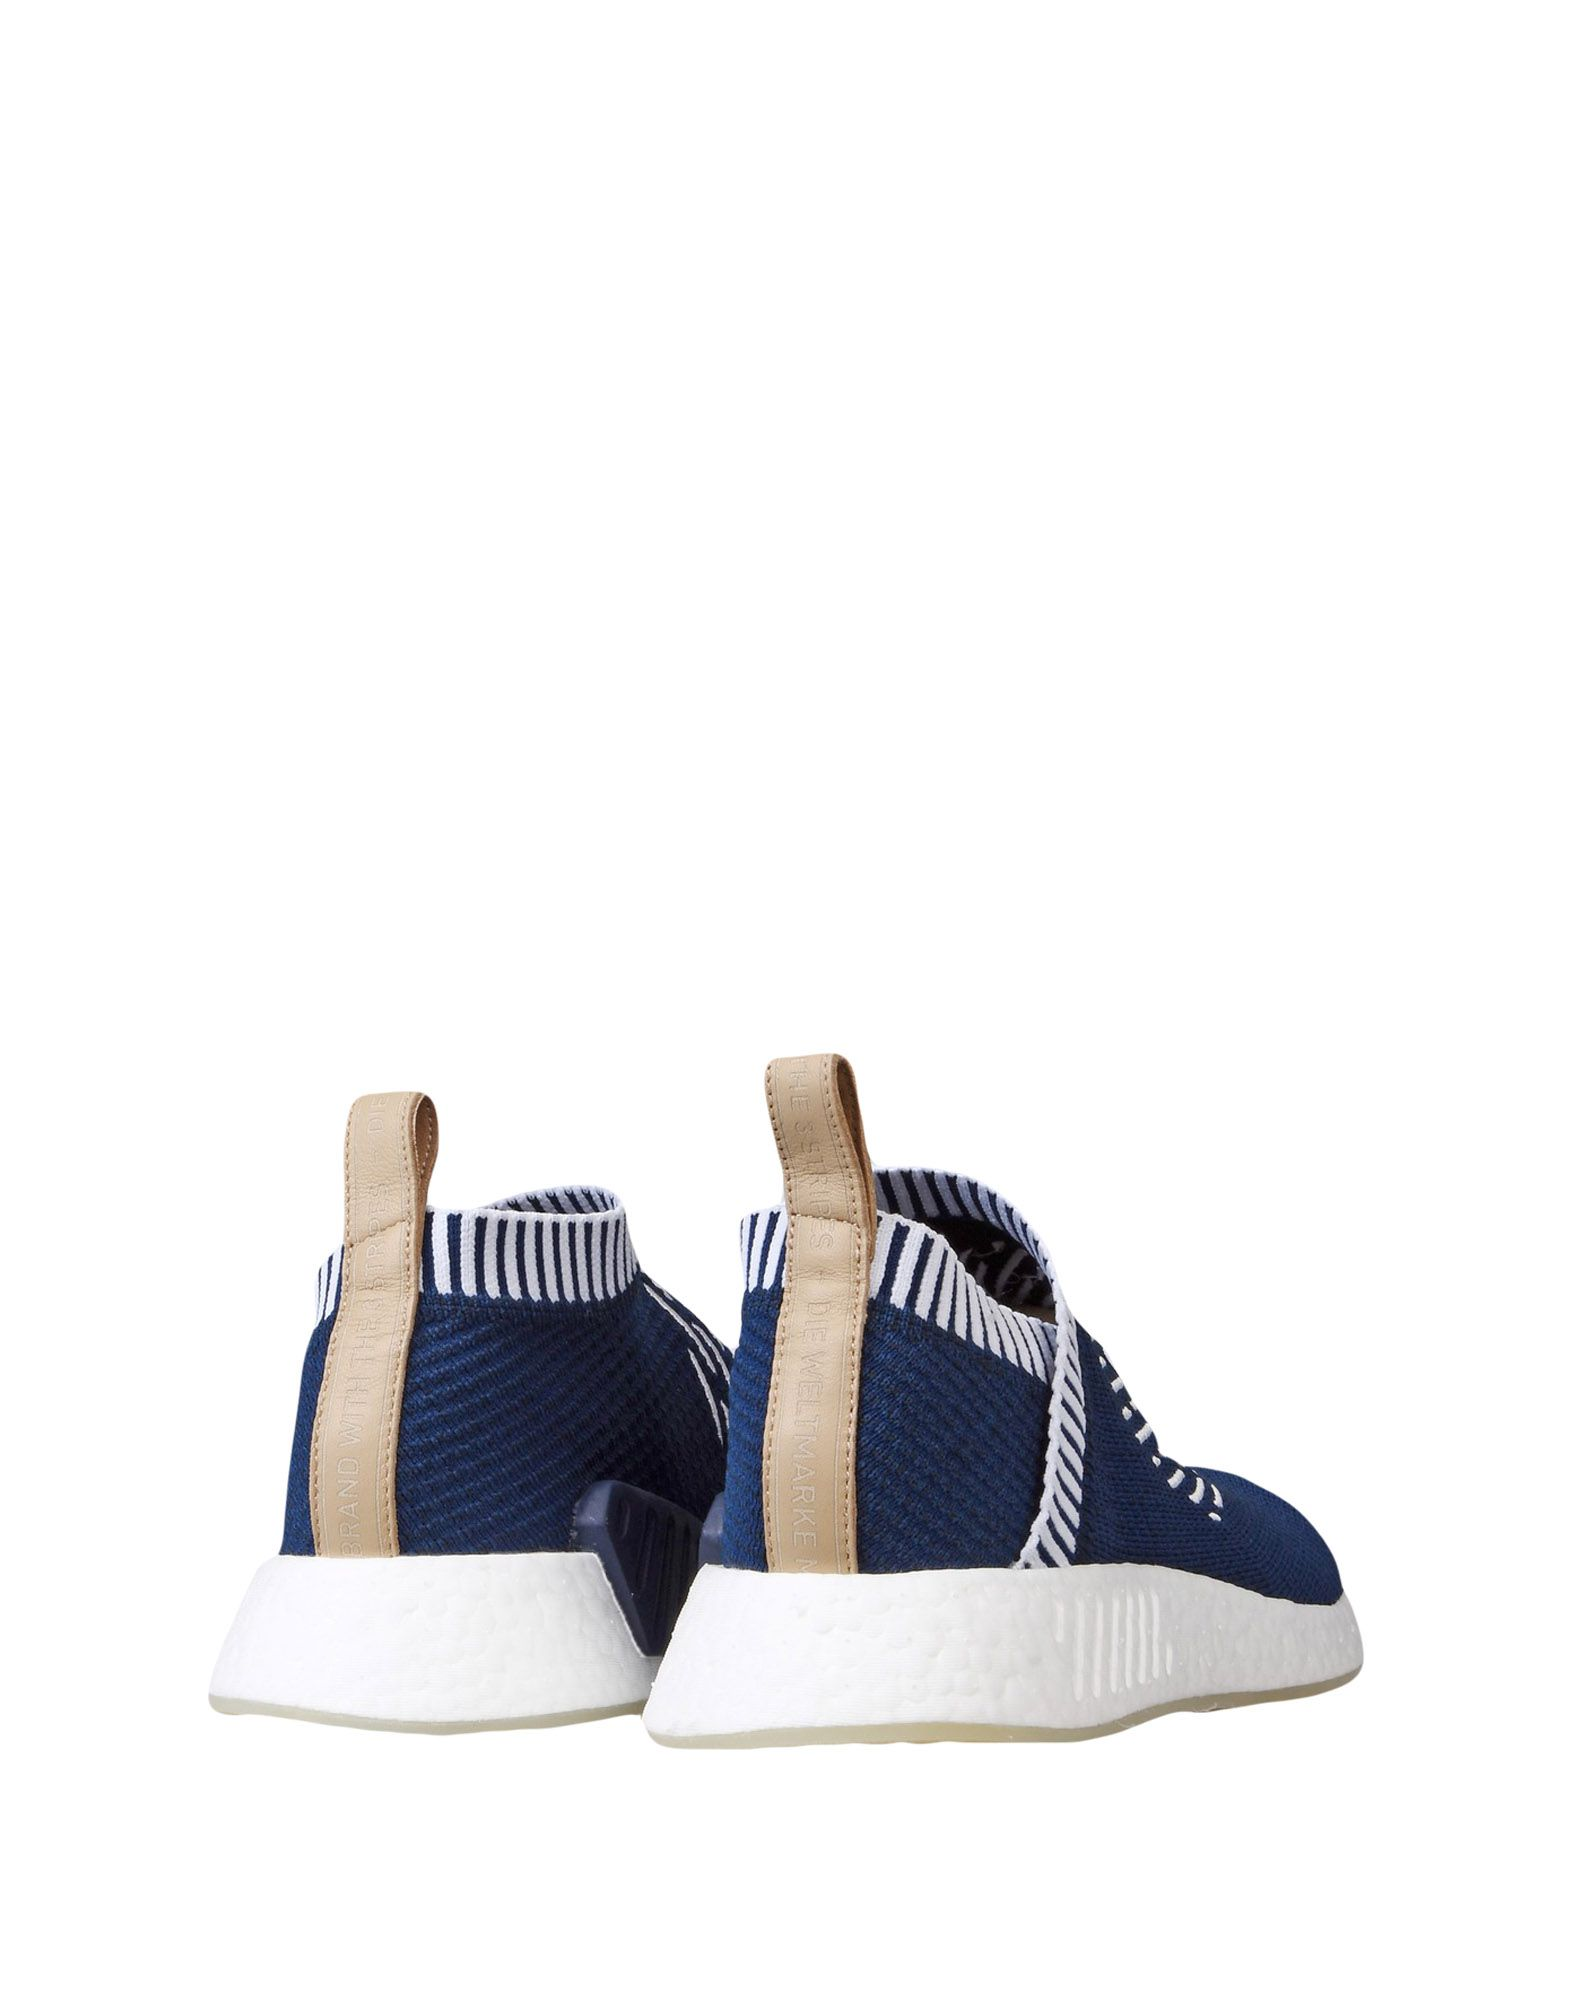 adidas originaux nmd_cs2 pk hommes - tennis - hommes pk adidas originaux des baskets en ligne sur l'australie - 11265475ar d6f28e